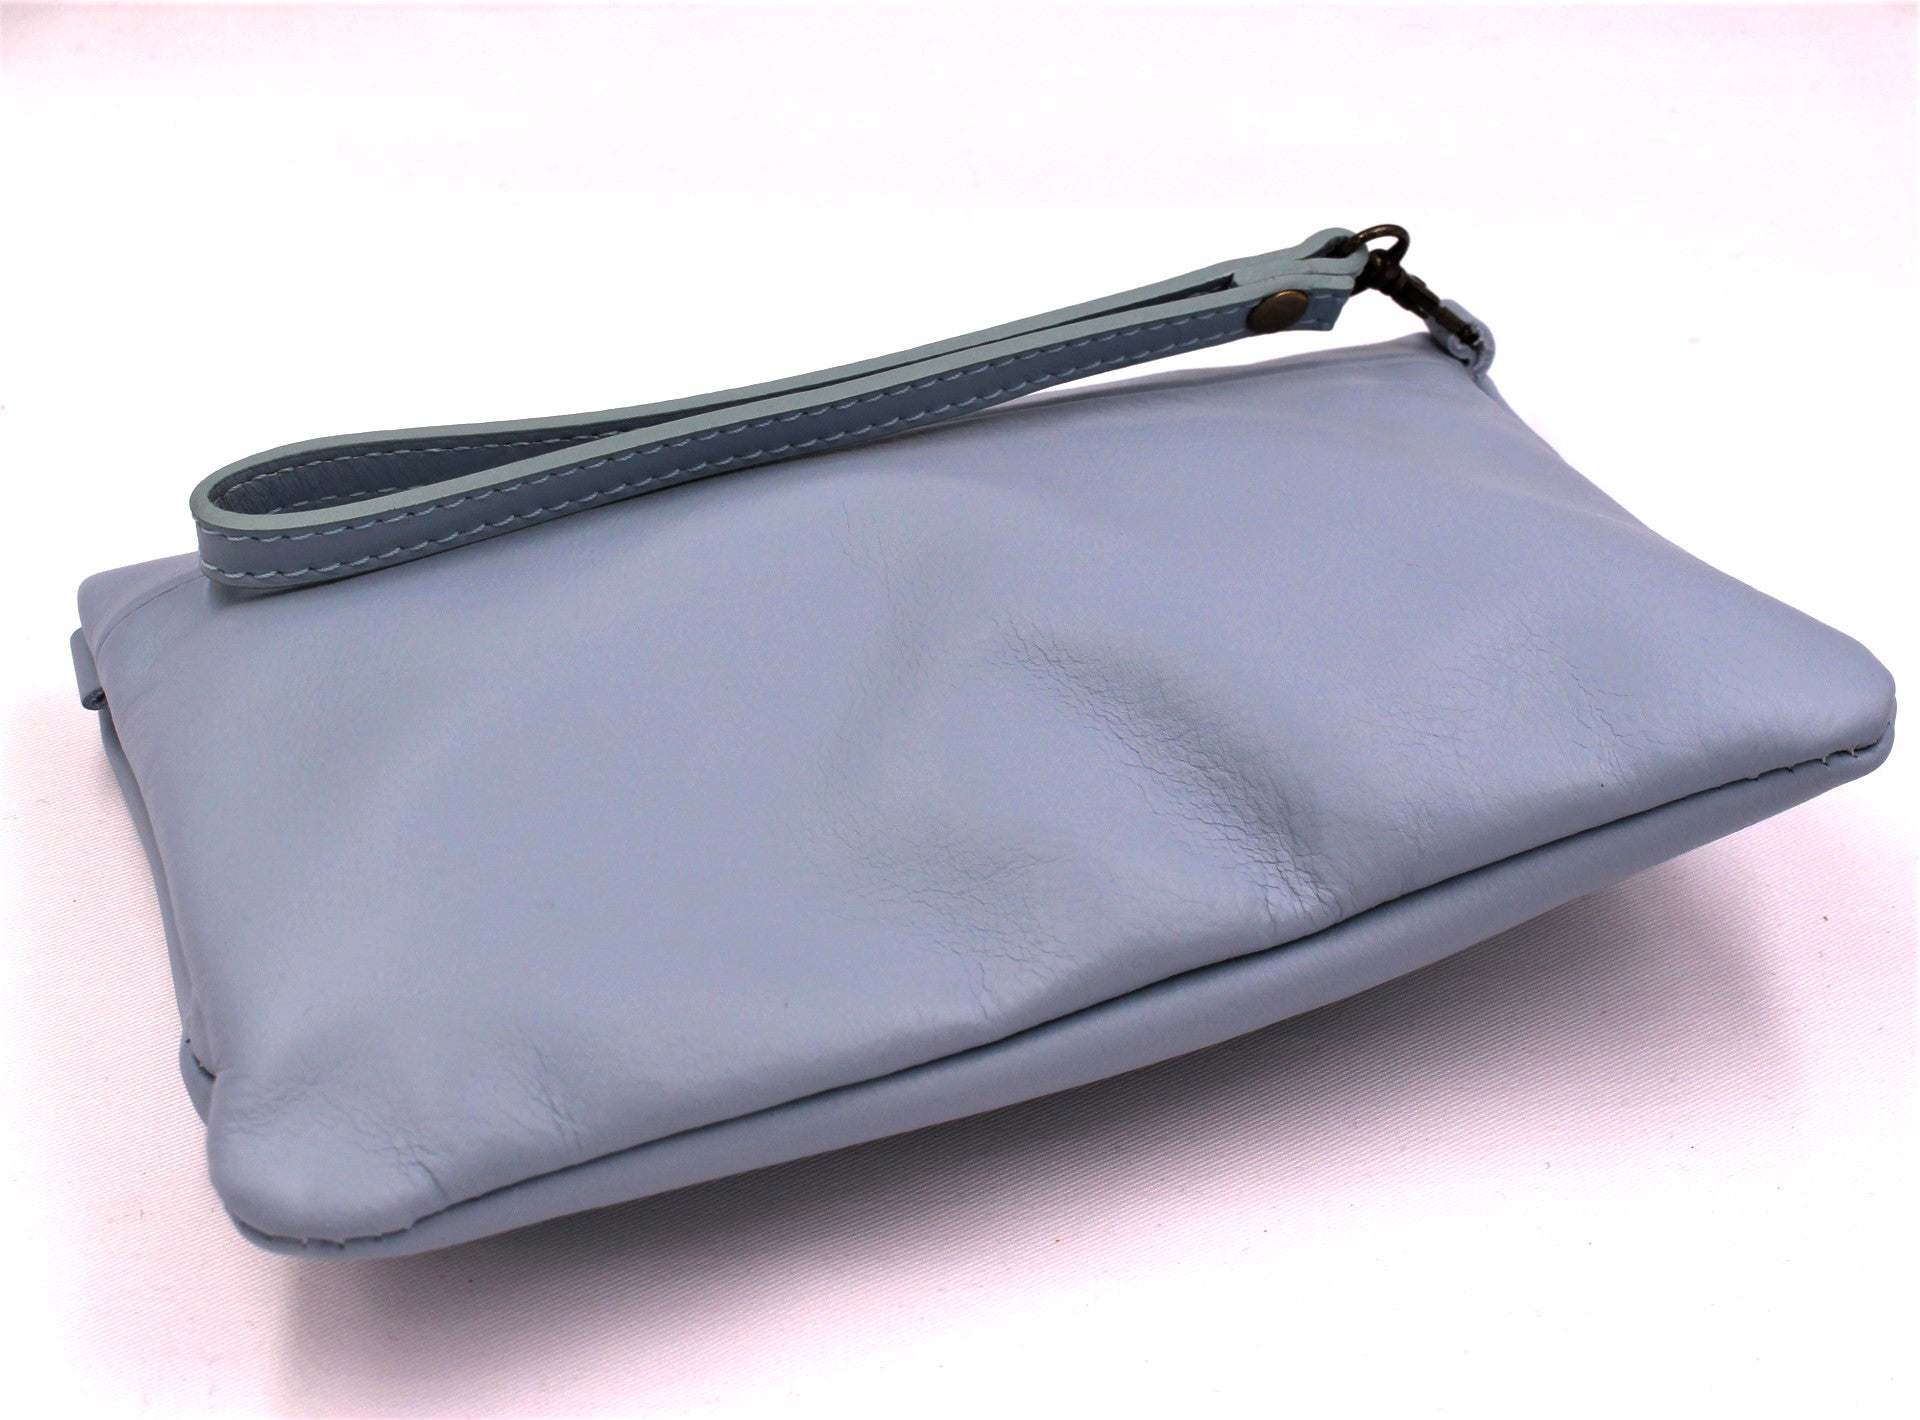 Azzurro Leather Crossbody Bag - Bridges to Borders